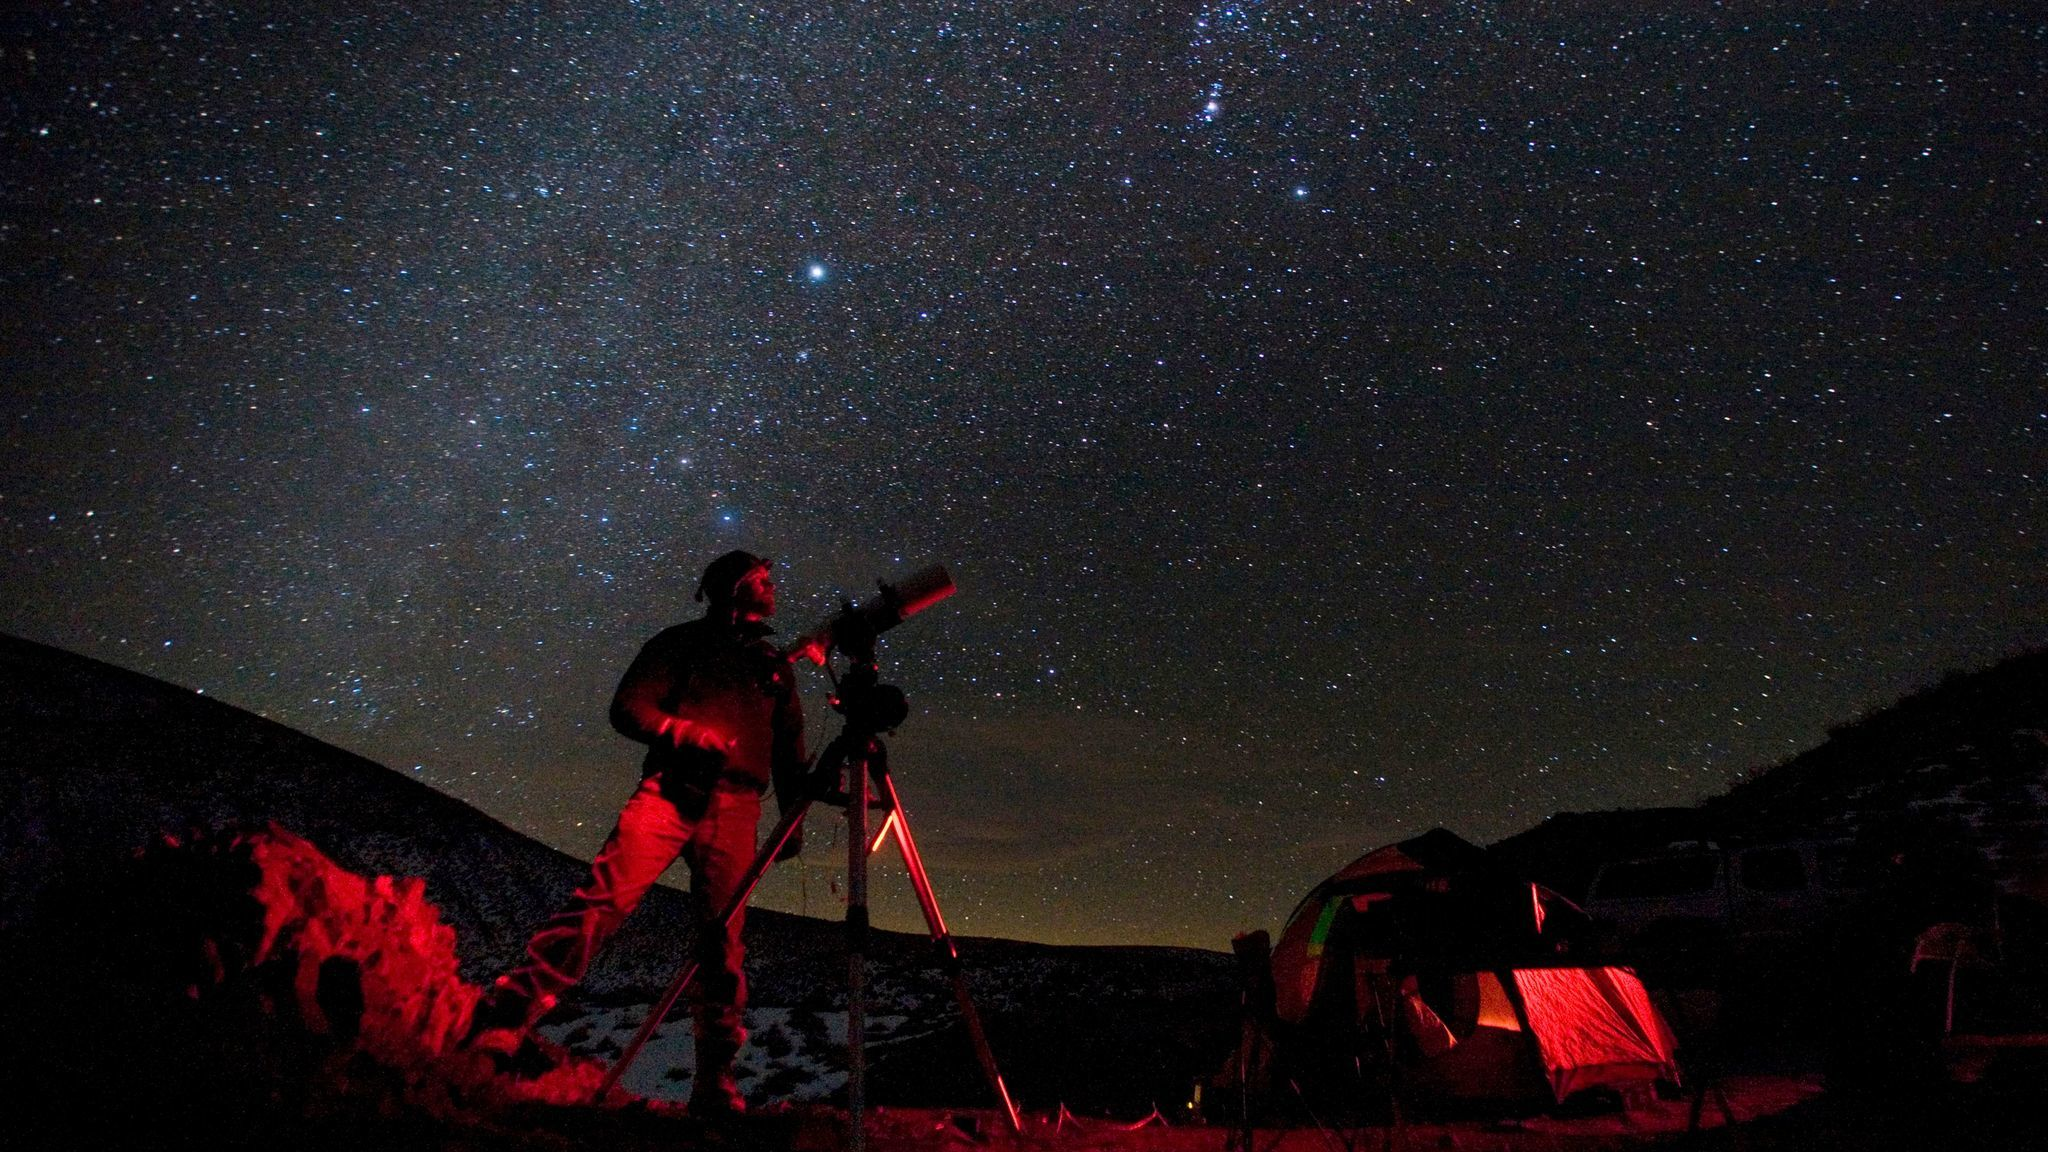 Taking in the night sky at Death Valley National Park.